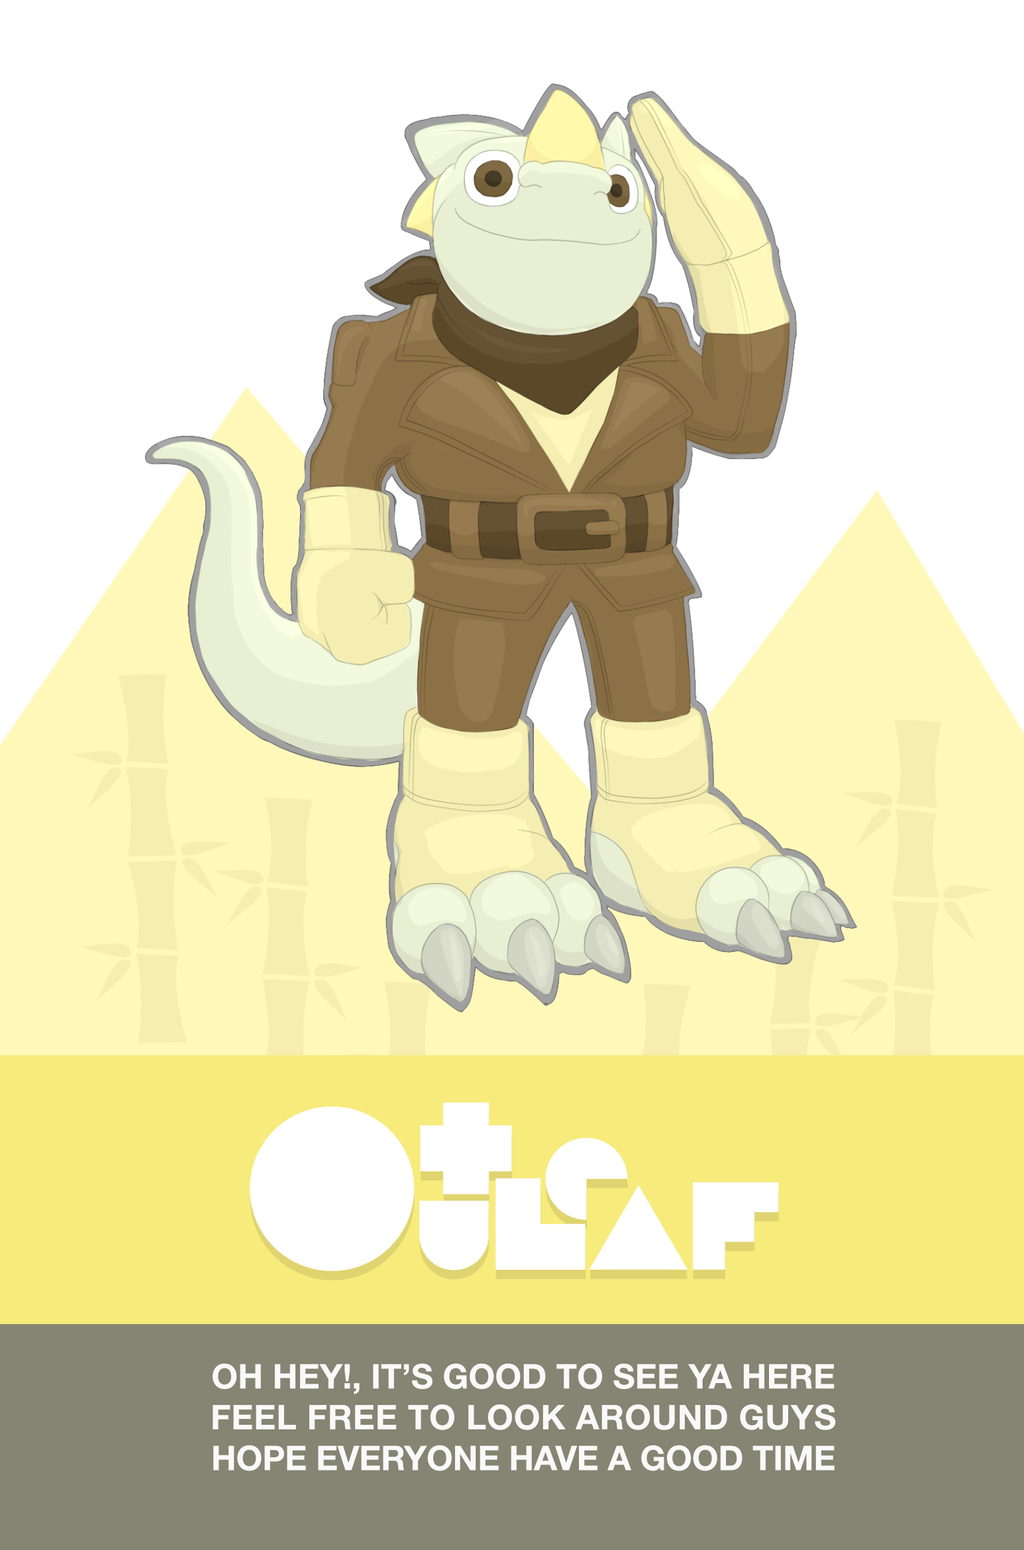 OutLeaf's Profile Picture